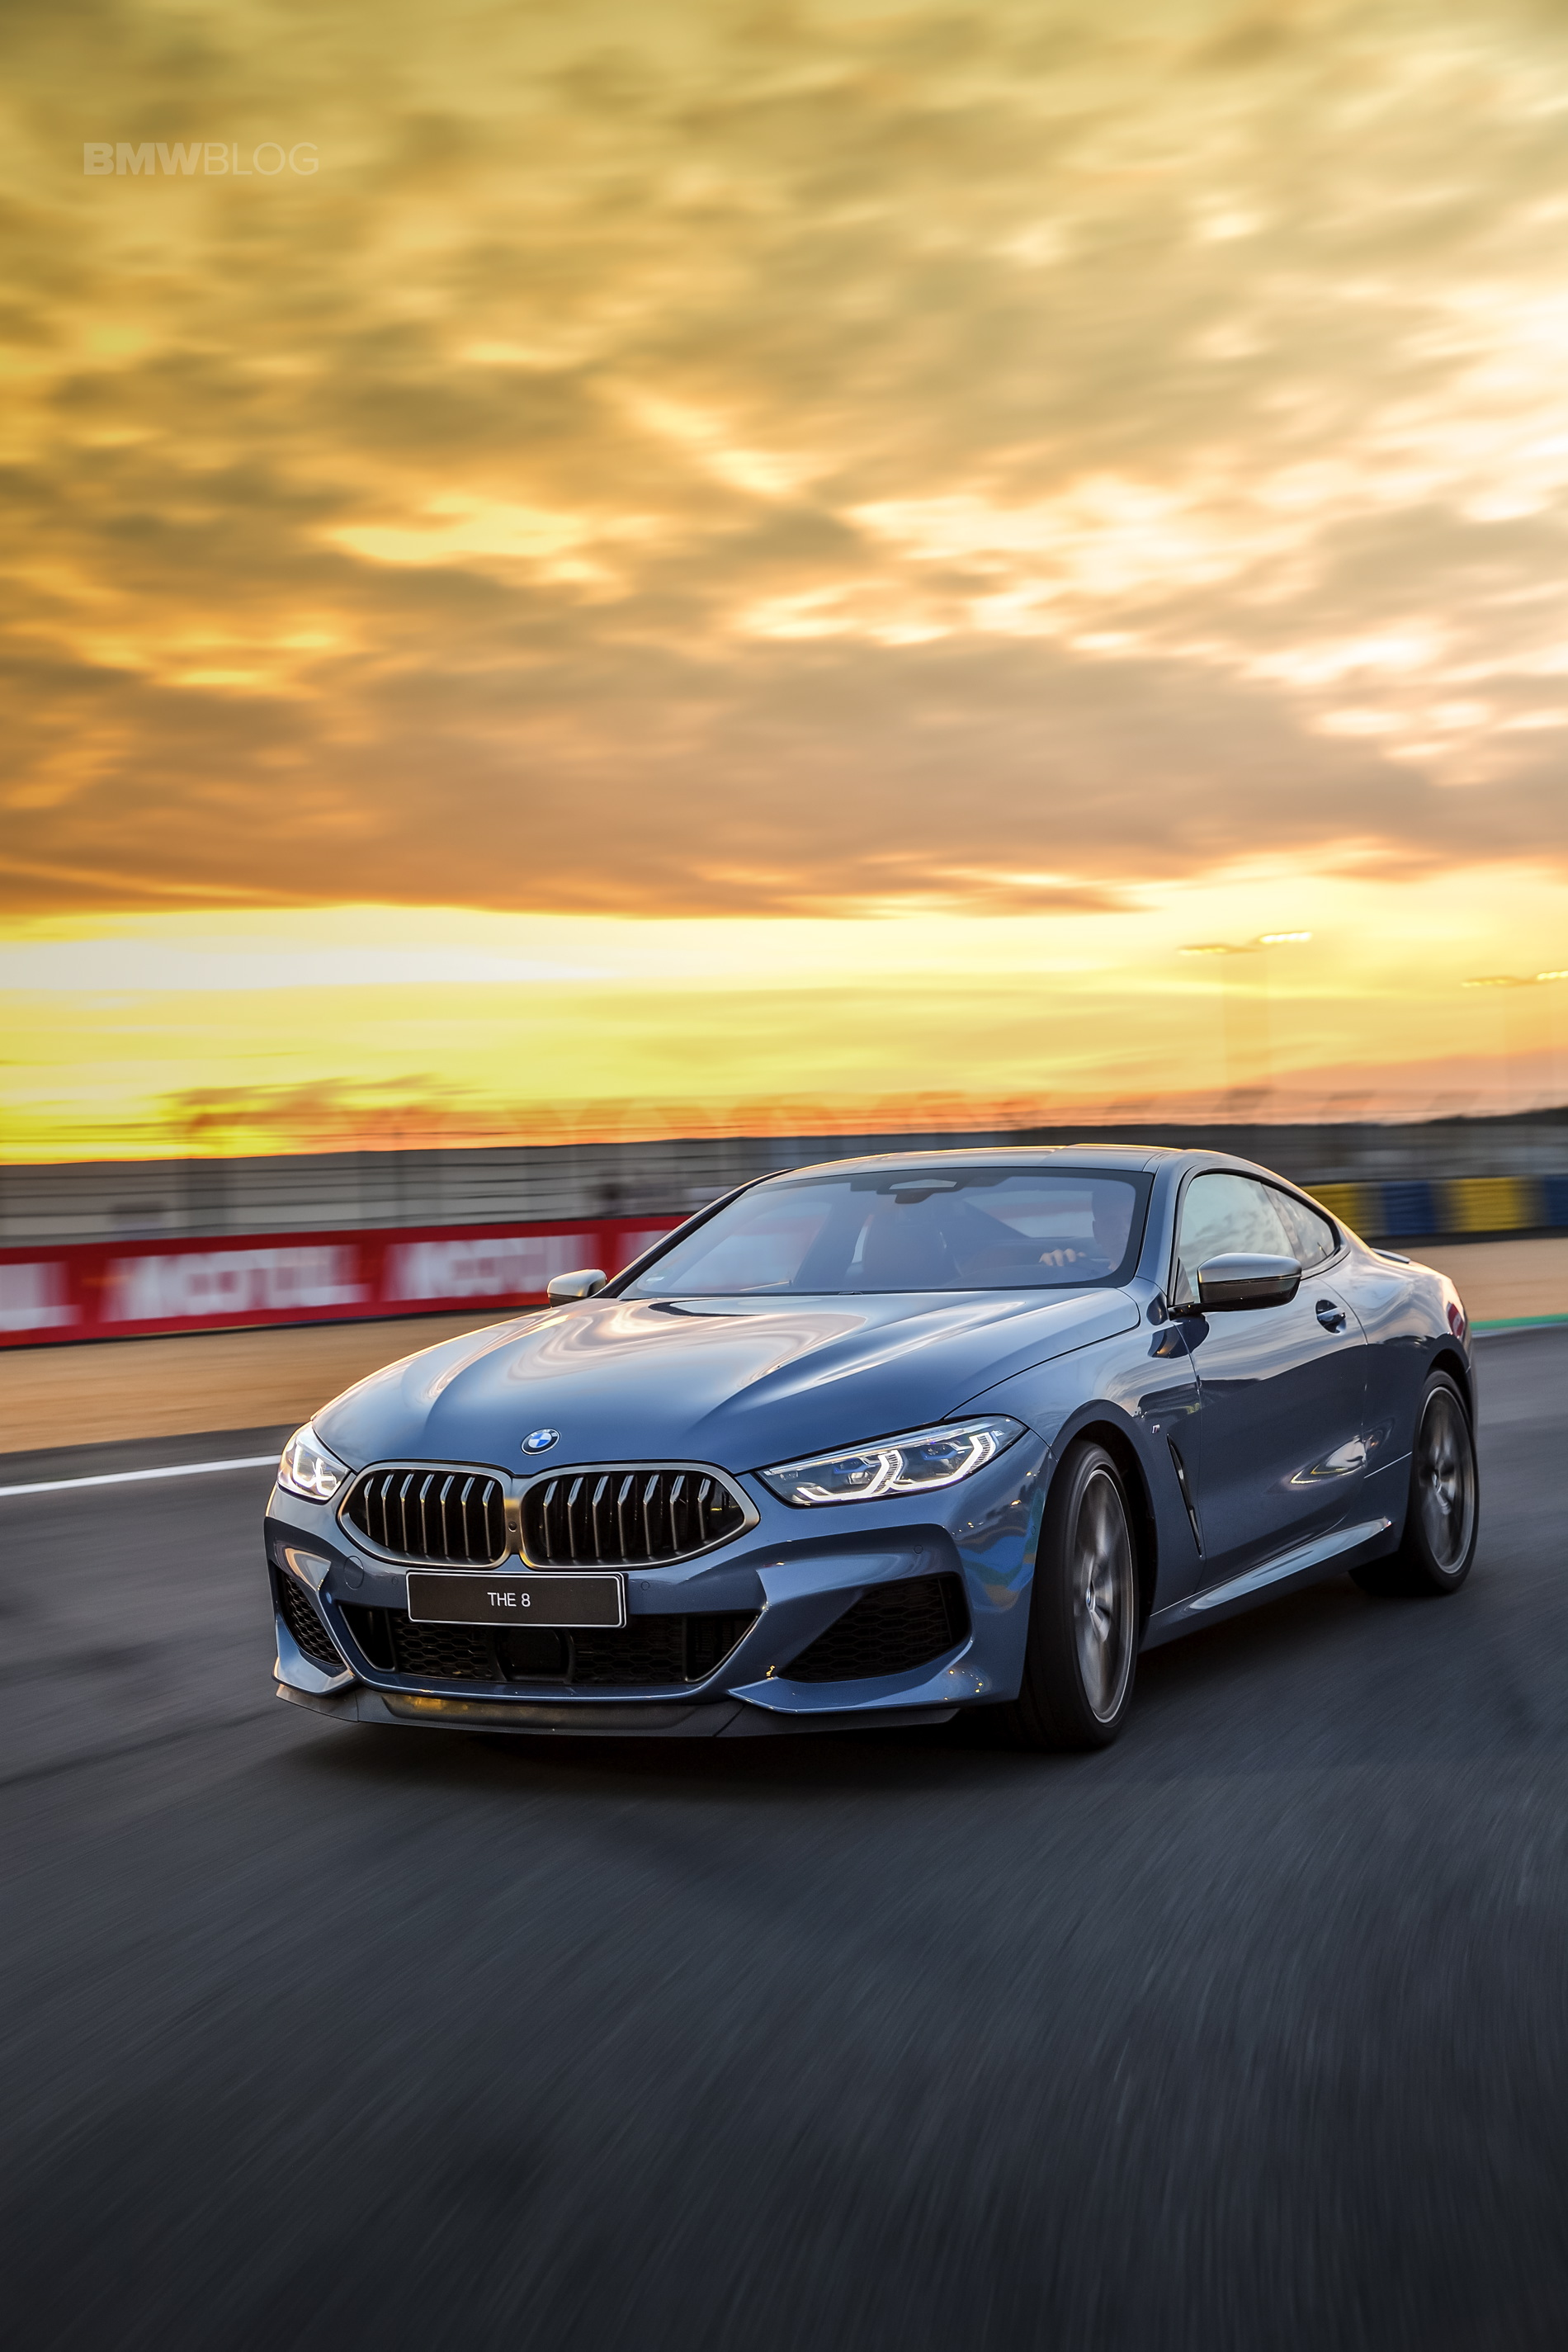 BMW 8 Series track Le mans 2018 30